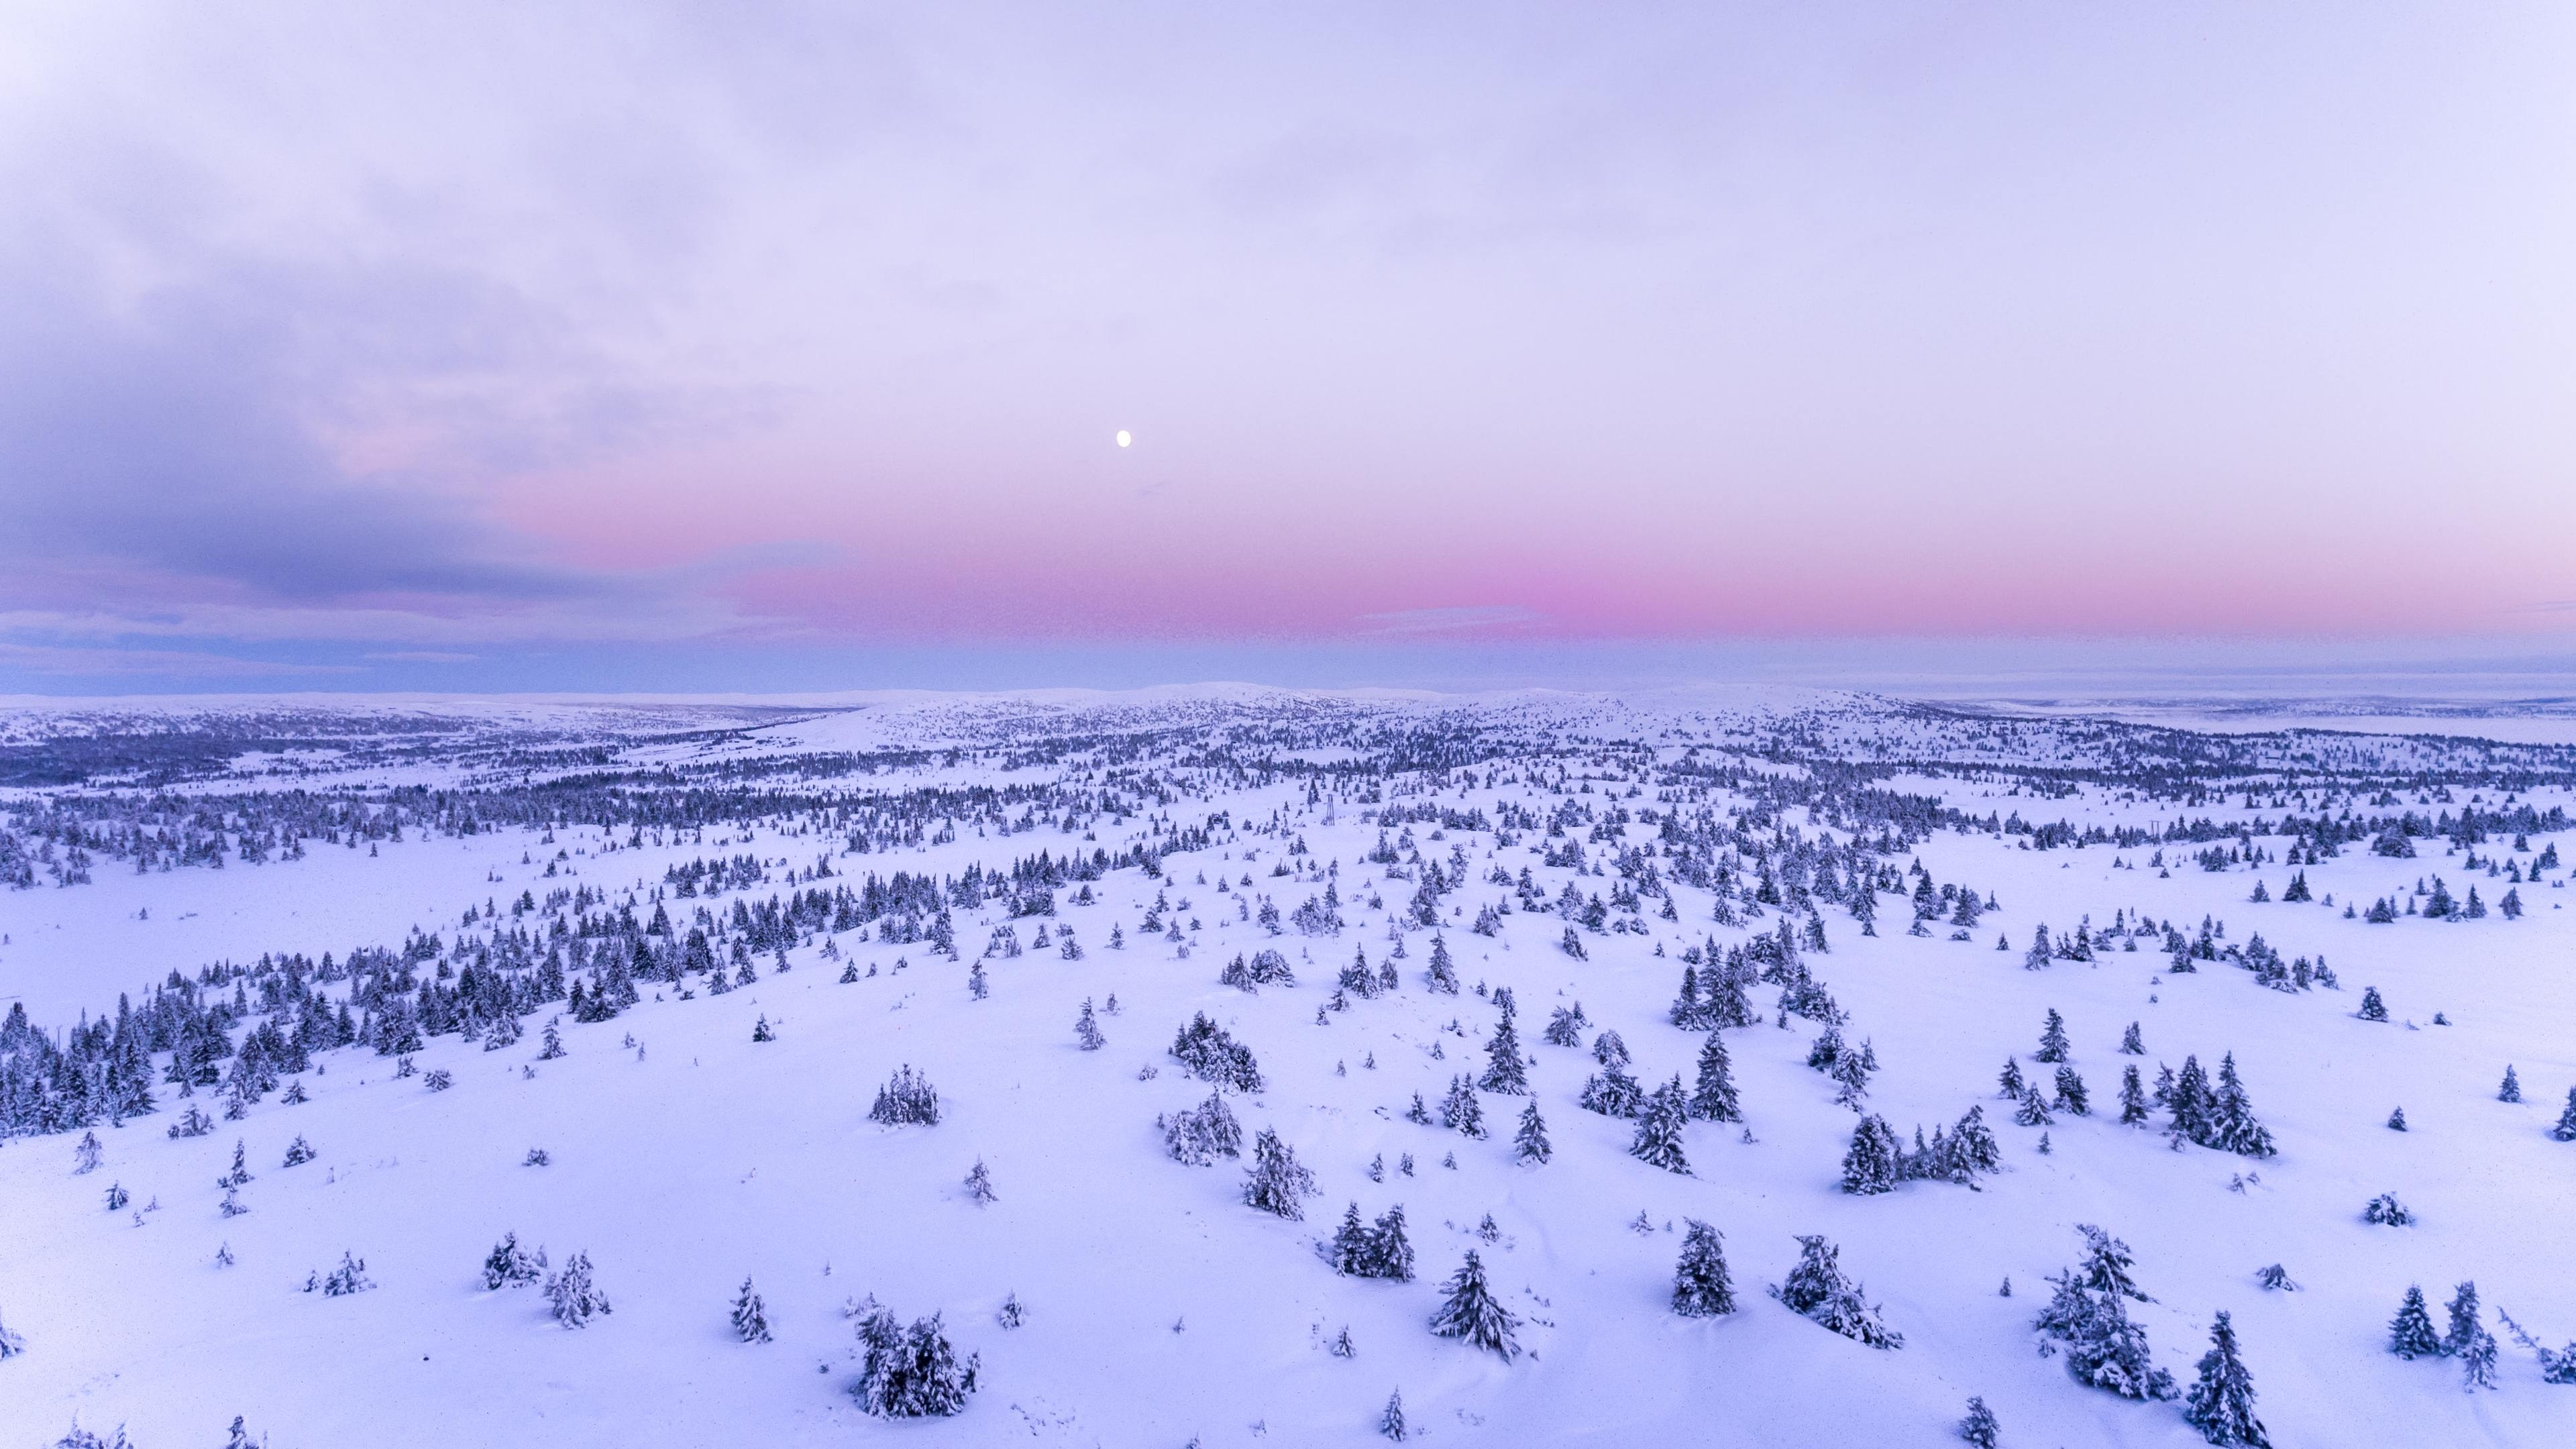 Wallpaper 4k Snow Covered Field 4k 4k Wallpapers Aerial